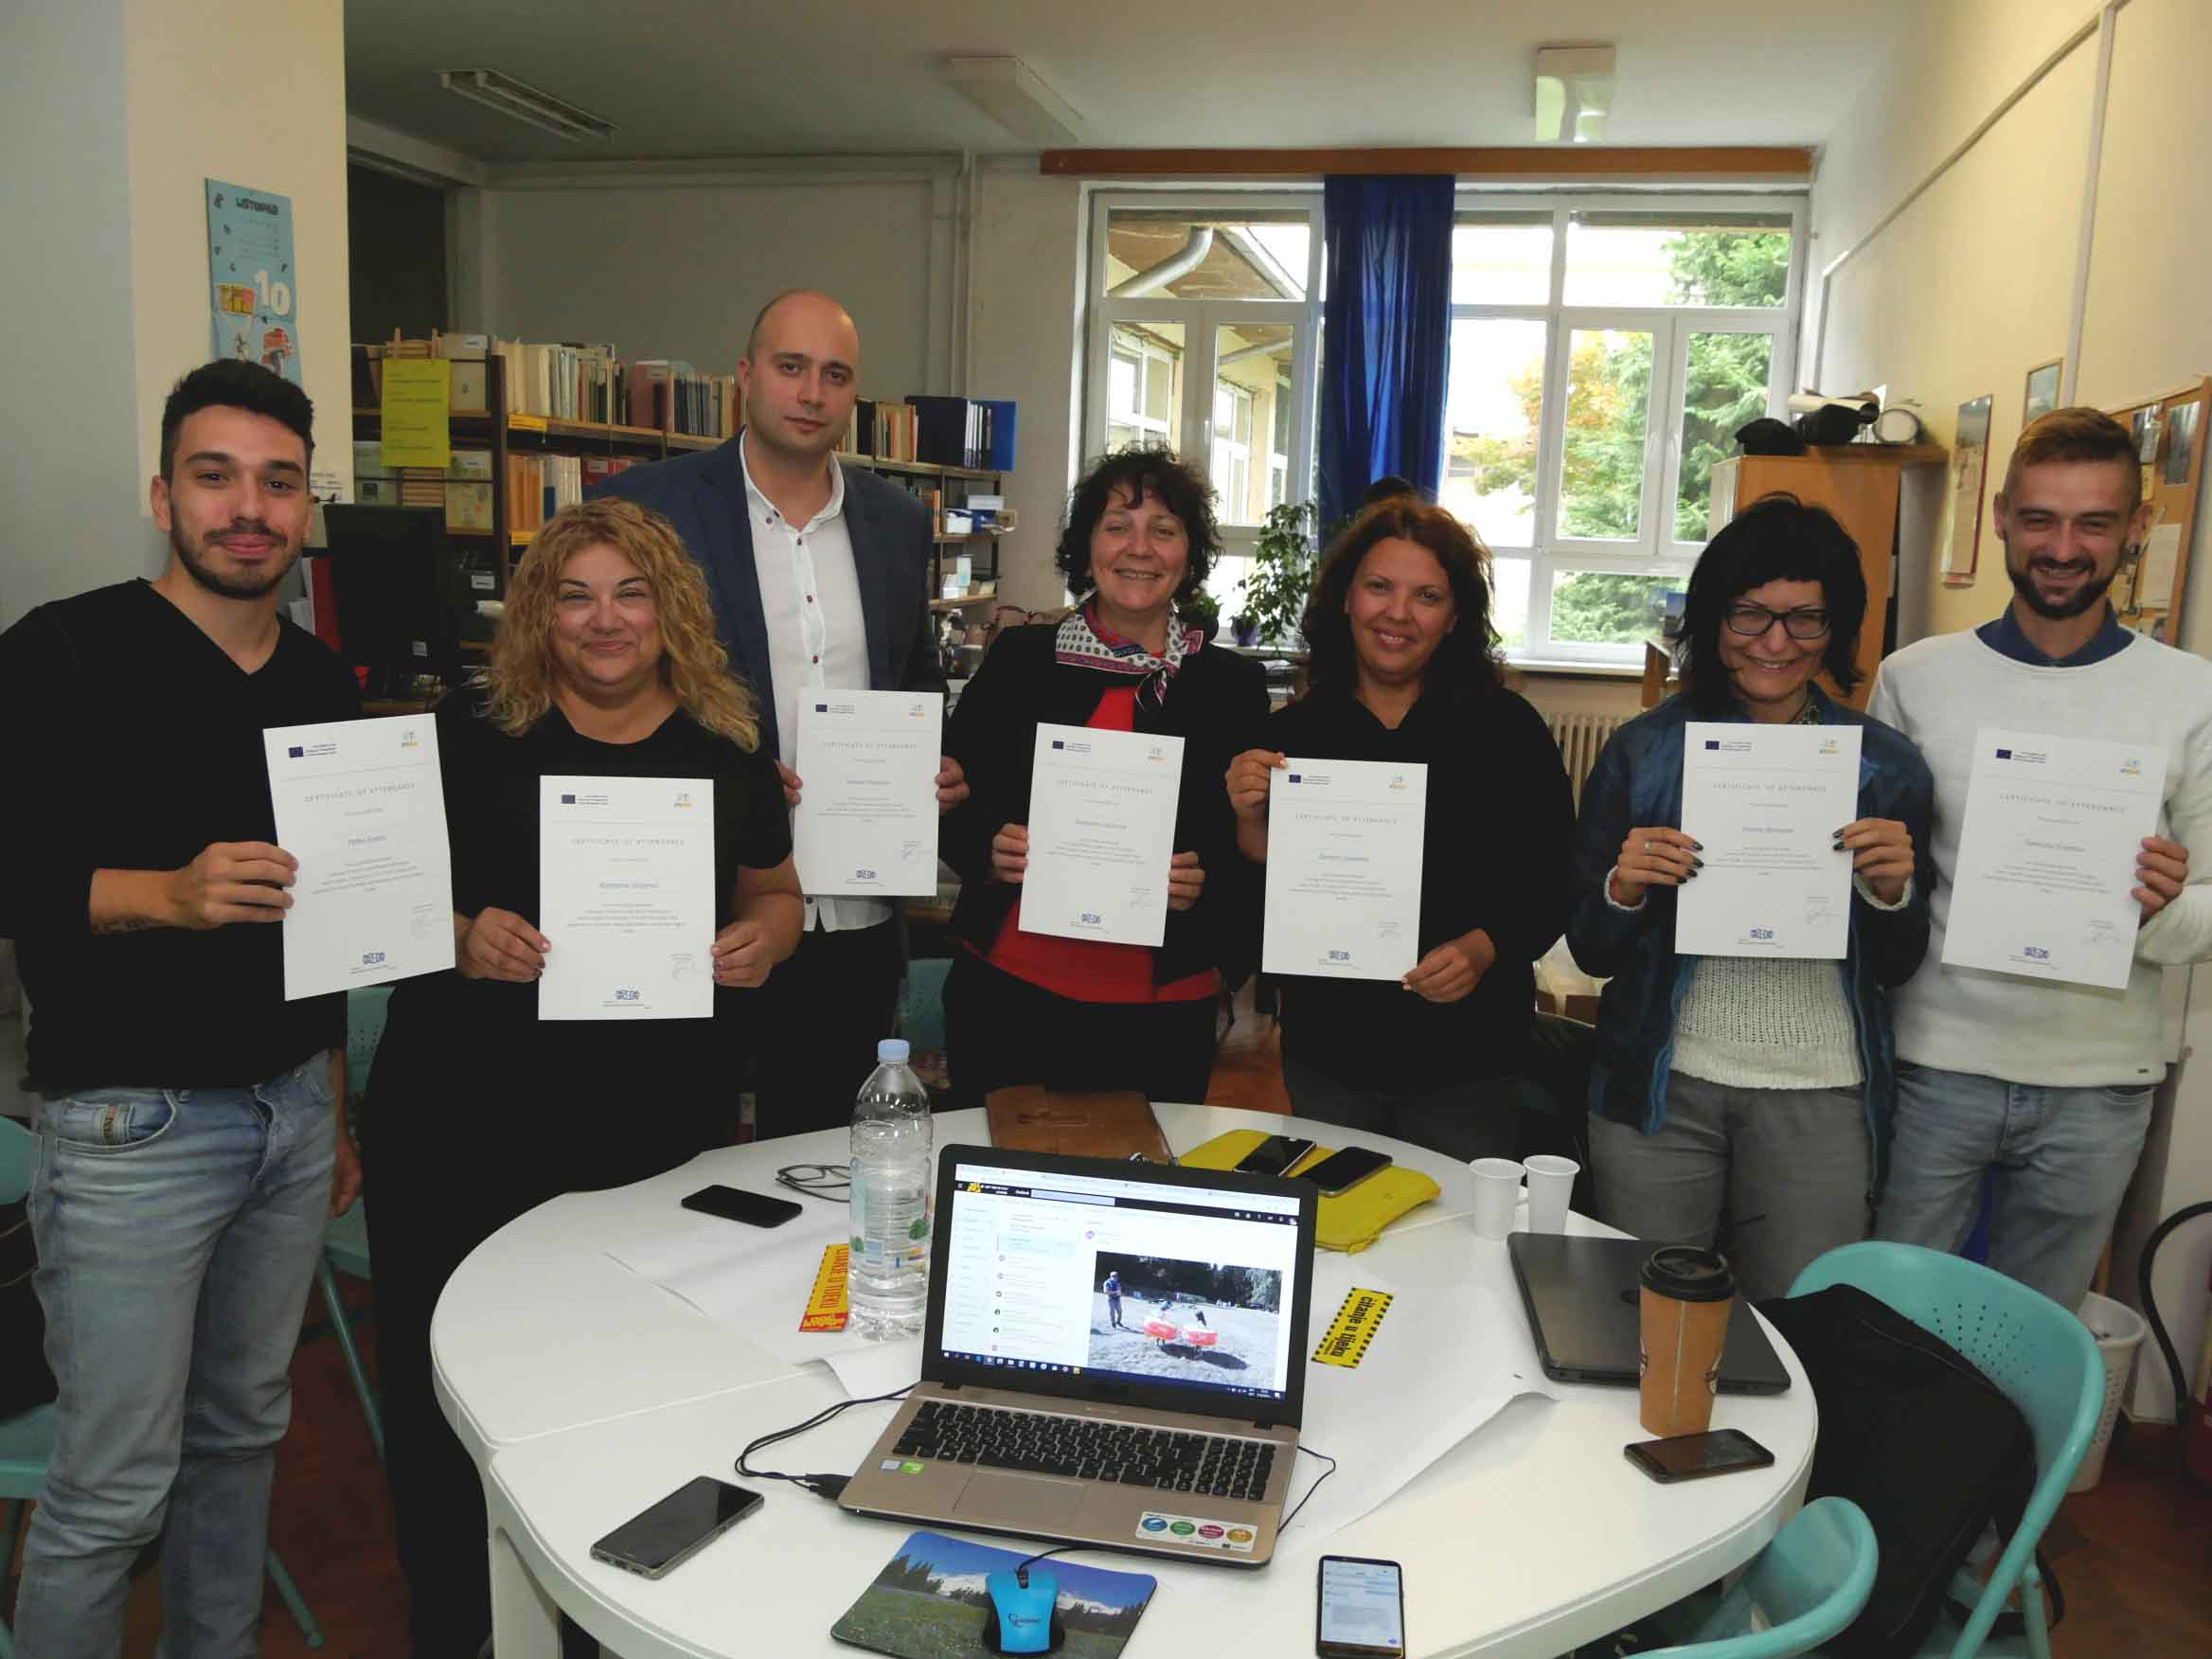 MEDIA AND INFORMATION LITERACY TRAINING OF TRAINERS IN OSIJEK, CROATIA